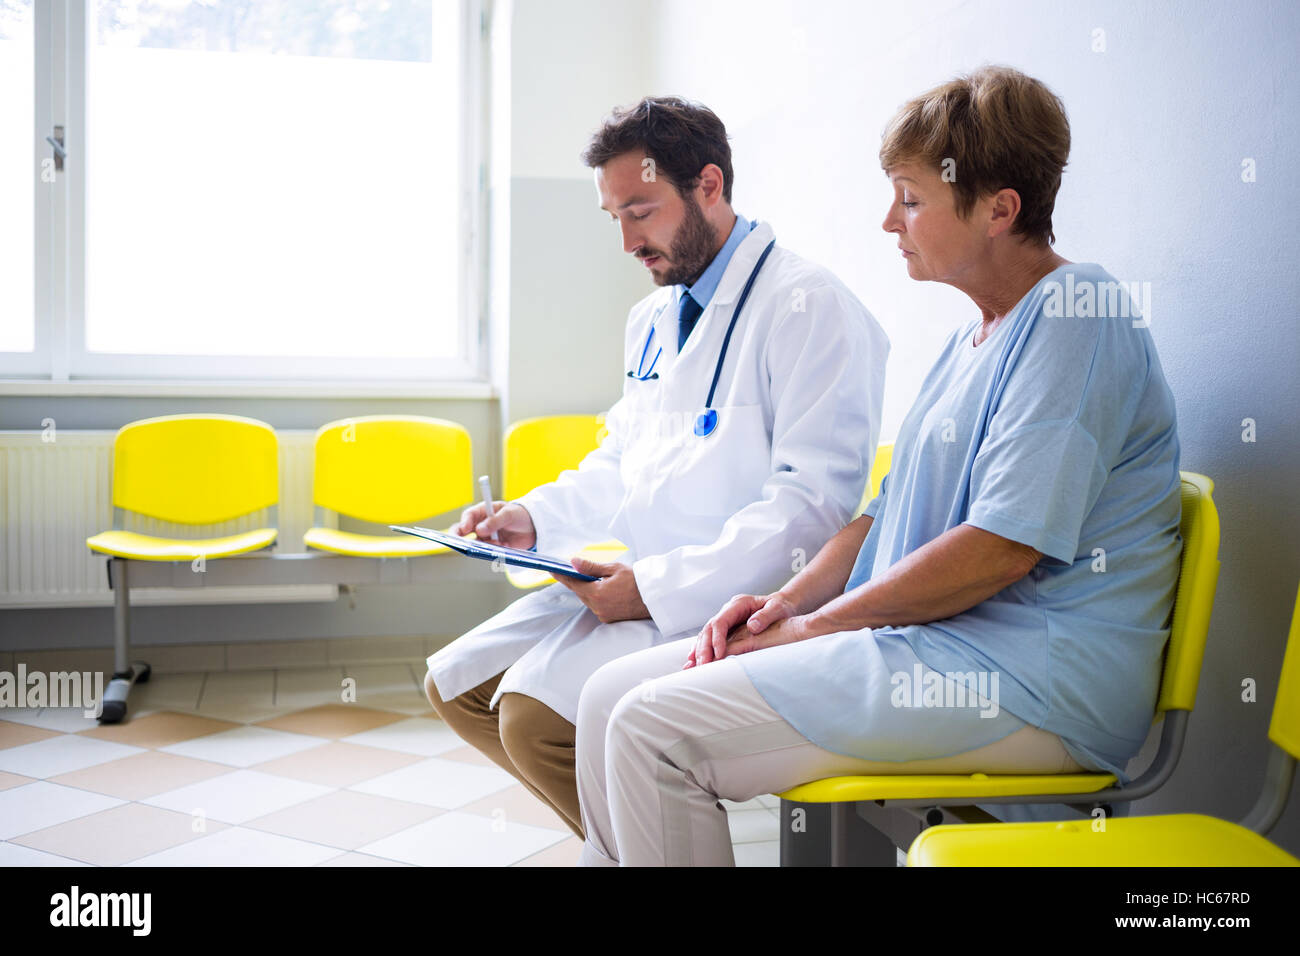 Doctor consulting patient in waiting room - Stock Image